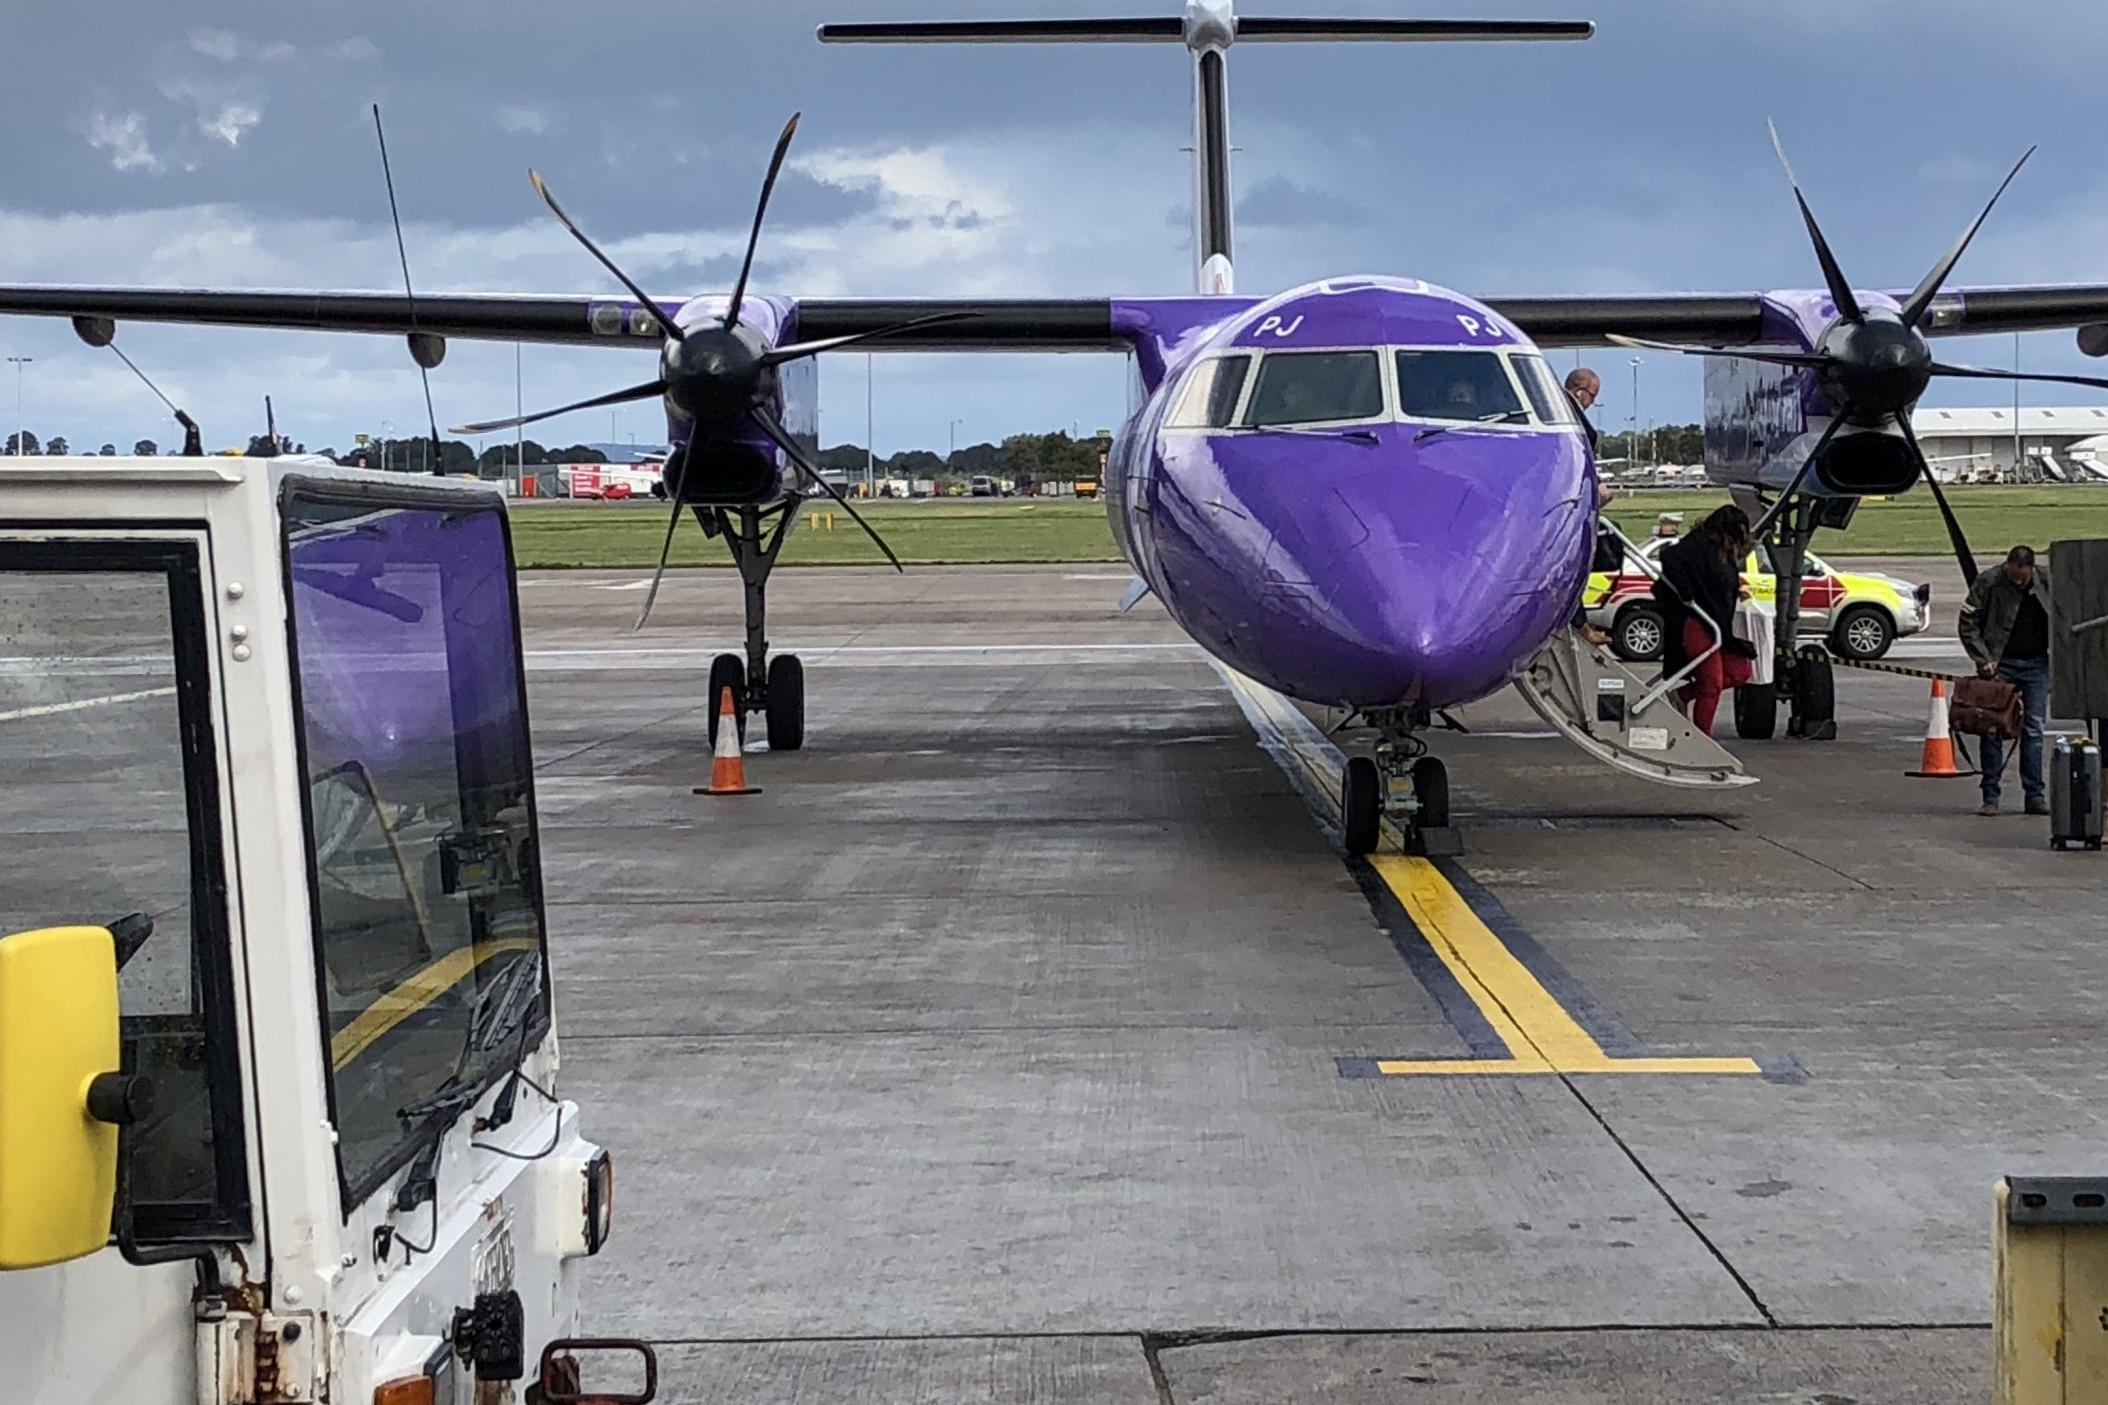 Fabulous Flybe flies again – but at what cost?